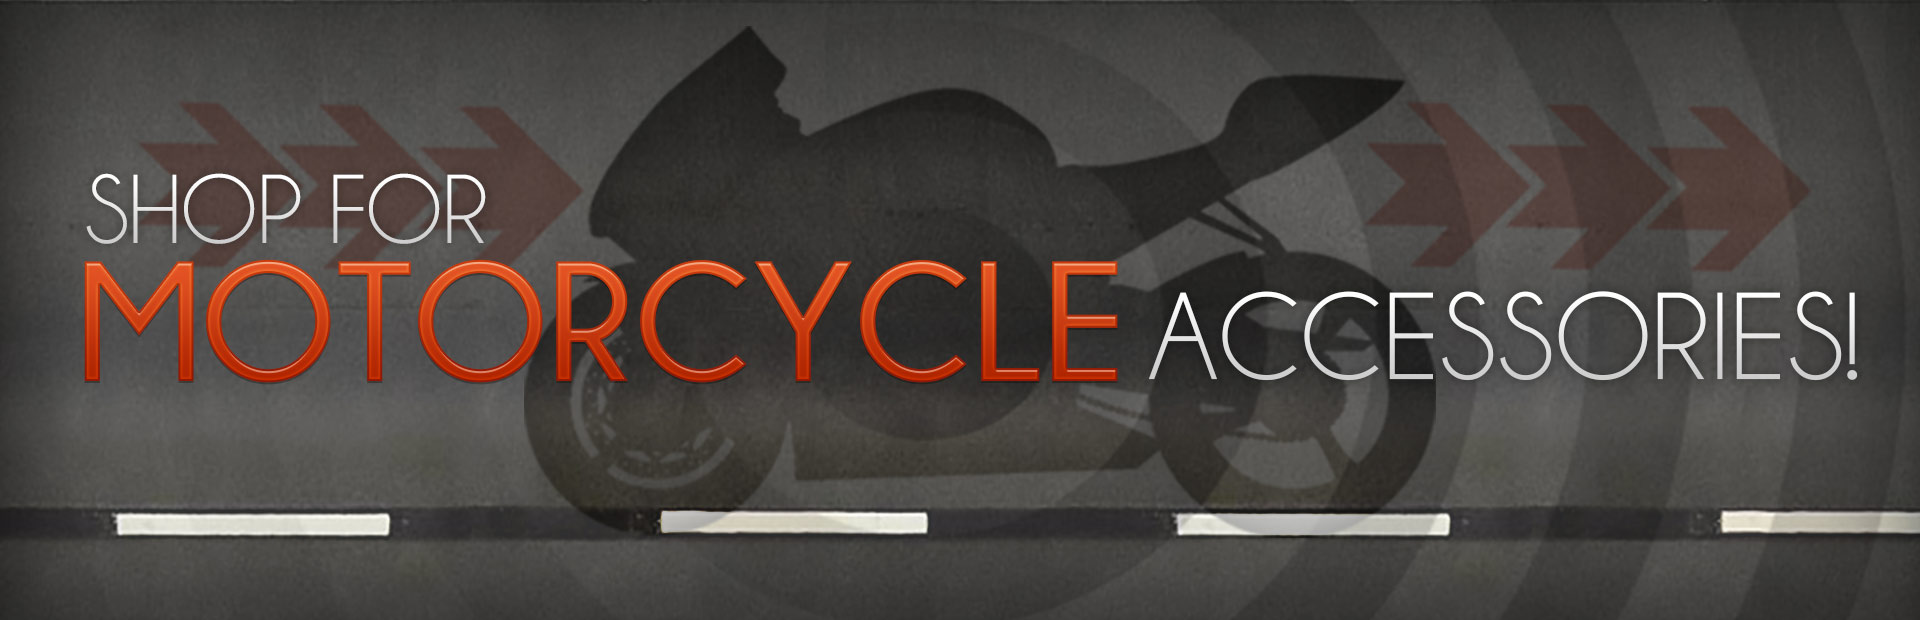 Click here to shop for motorcycle accessories.